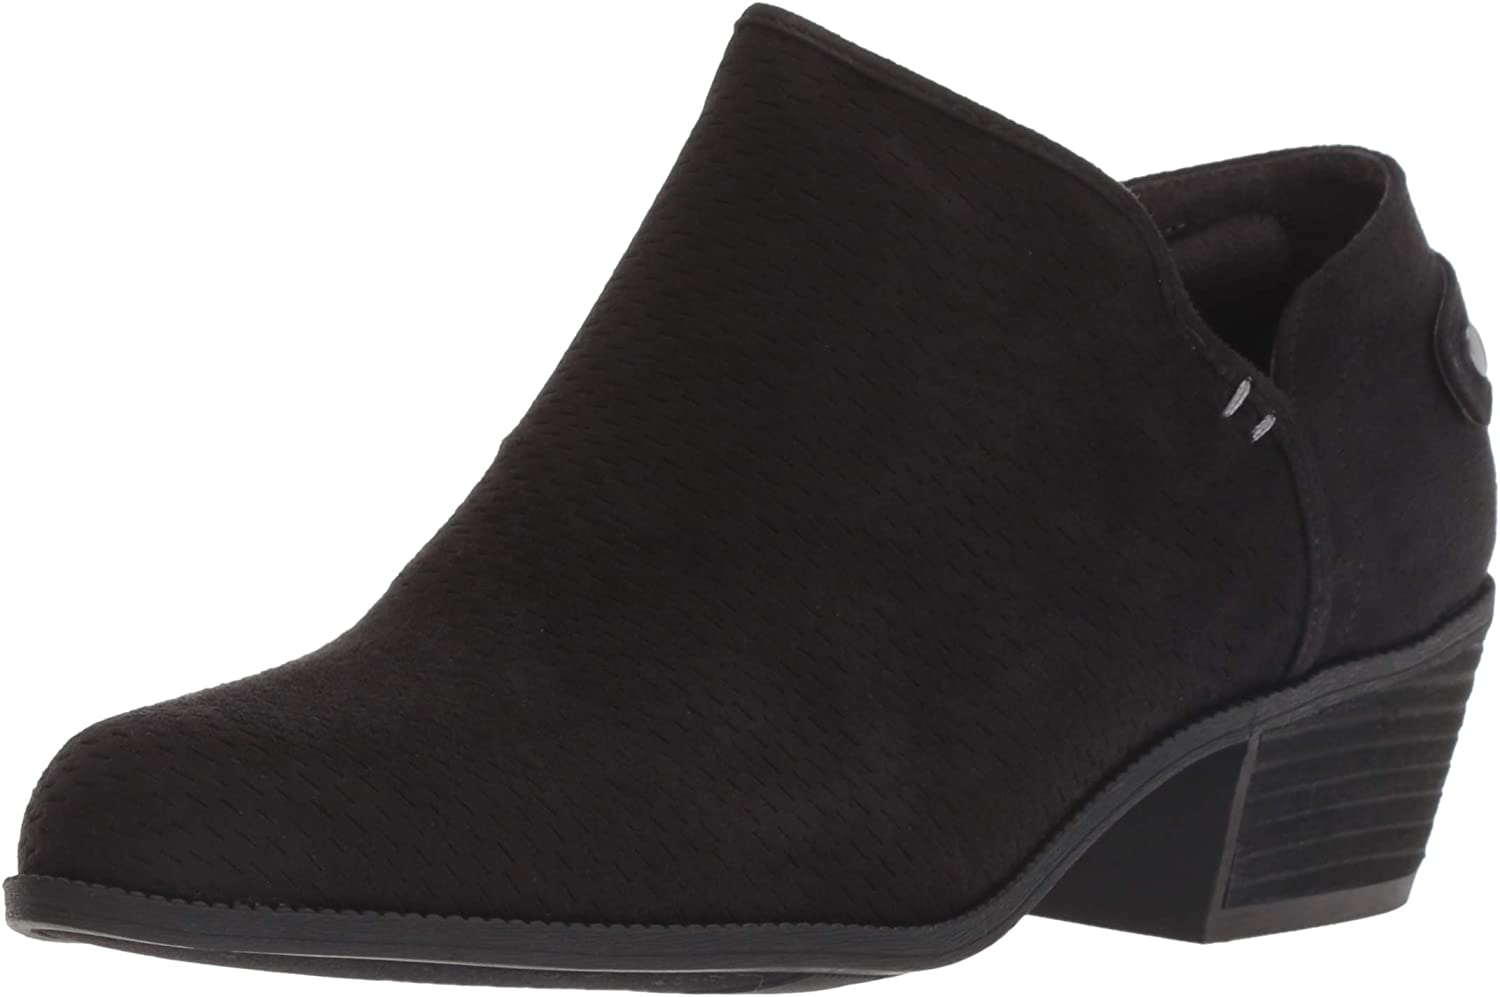 Dr. Scholl's shoes Womens Better Ankle Boot